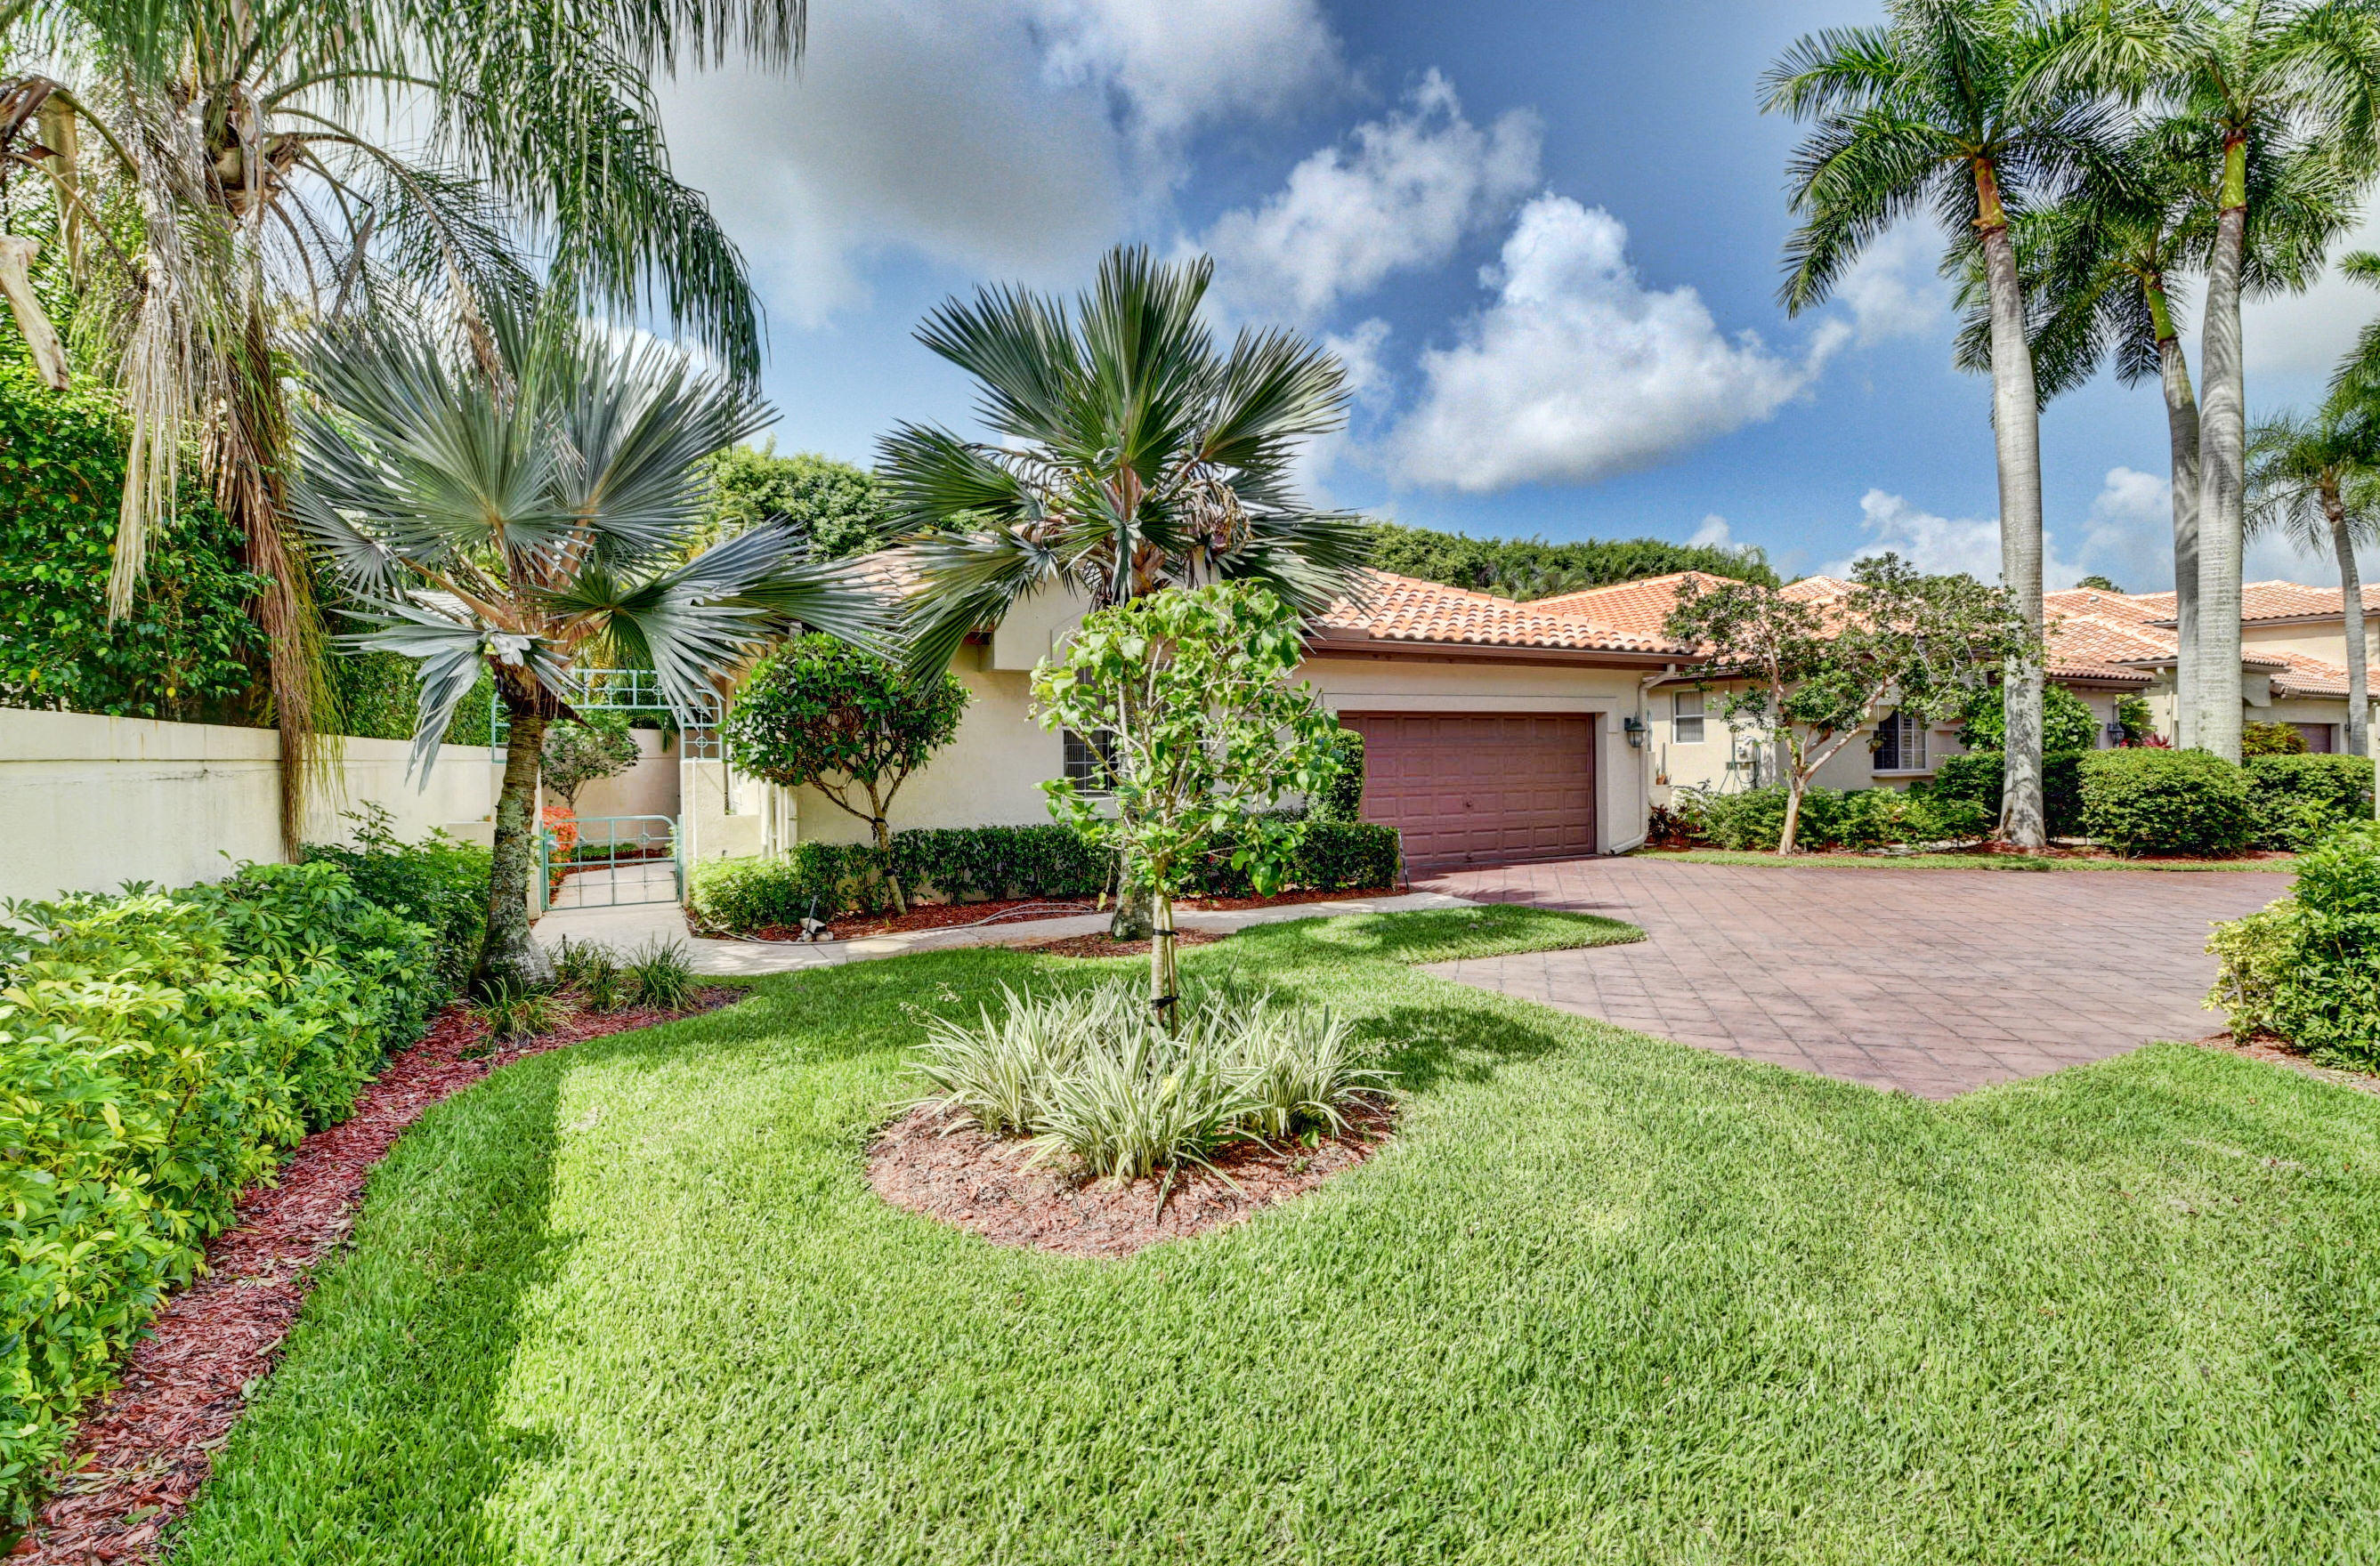 Details for 5152 26th Circle Nw, Boca Raton, FL 33496